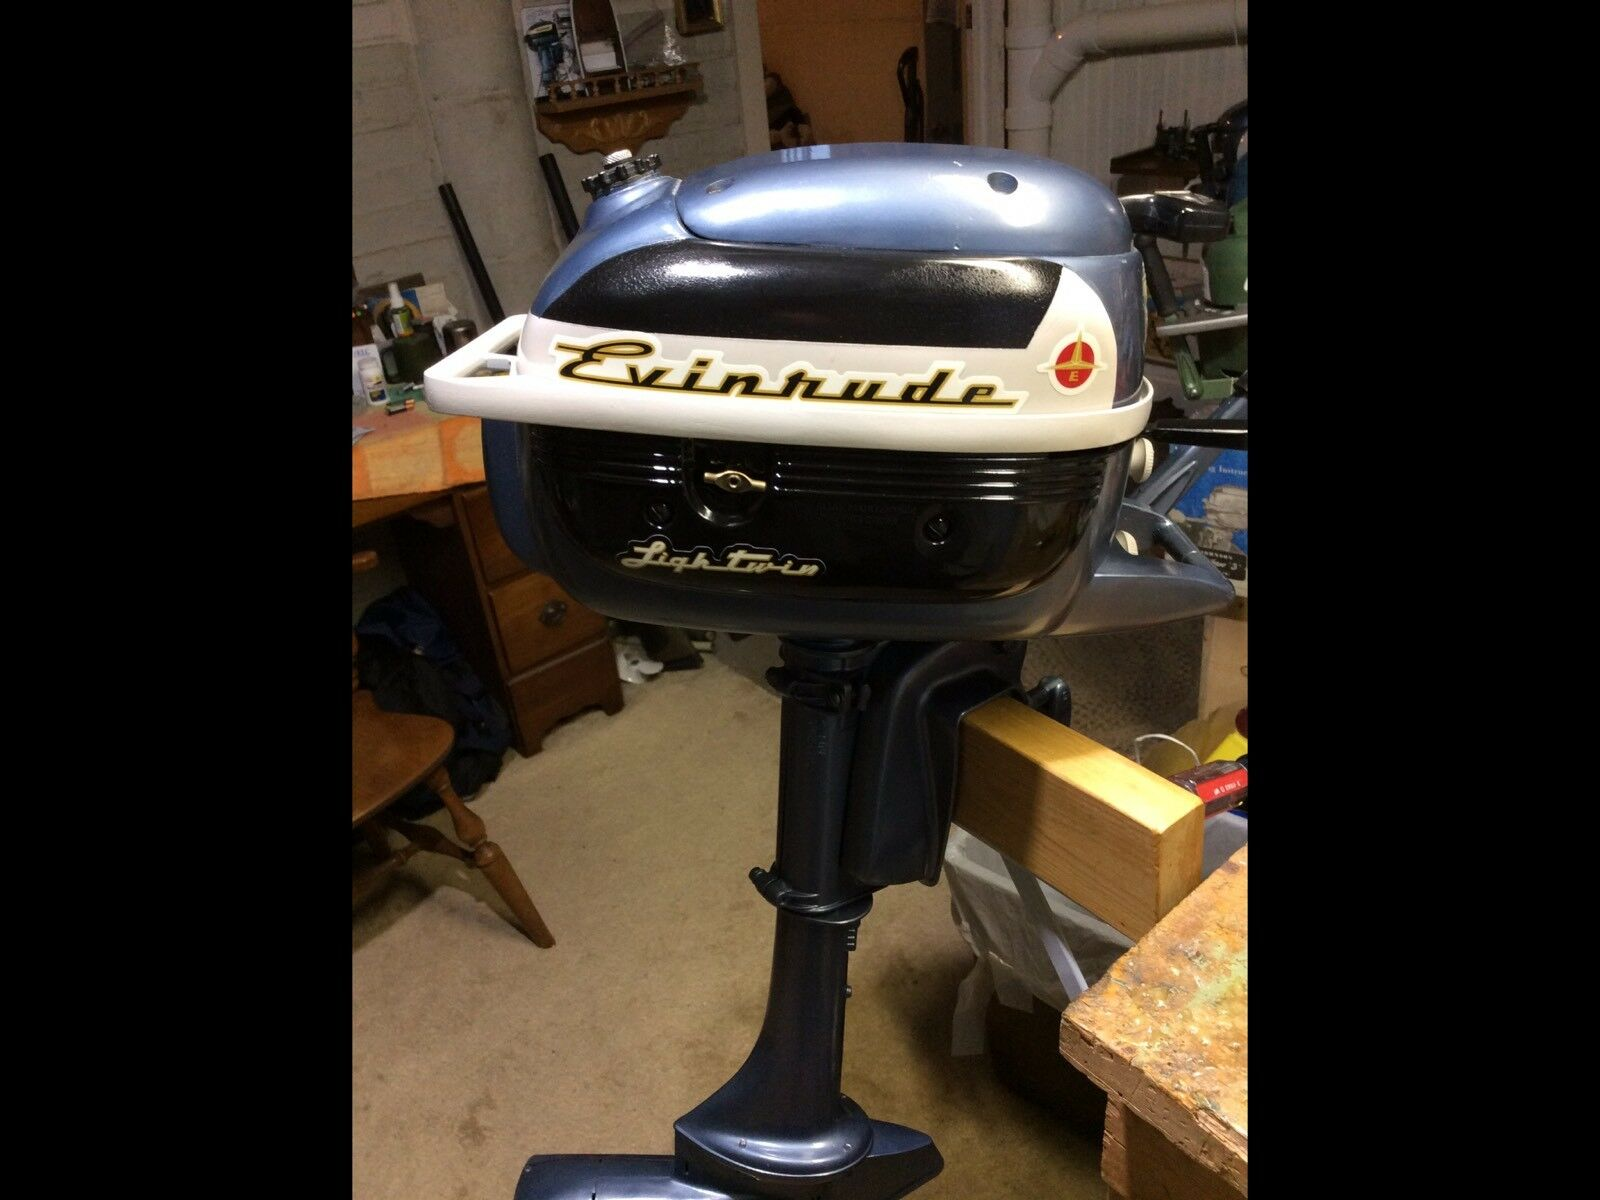 Evinrude lightwin 3 hp Outboard Boat Motor 1957 1 of 12 See More